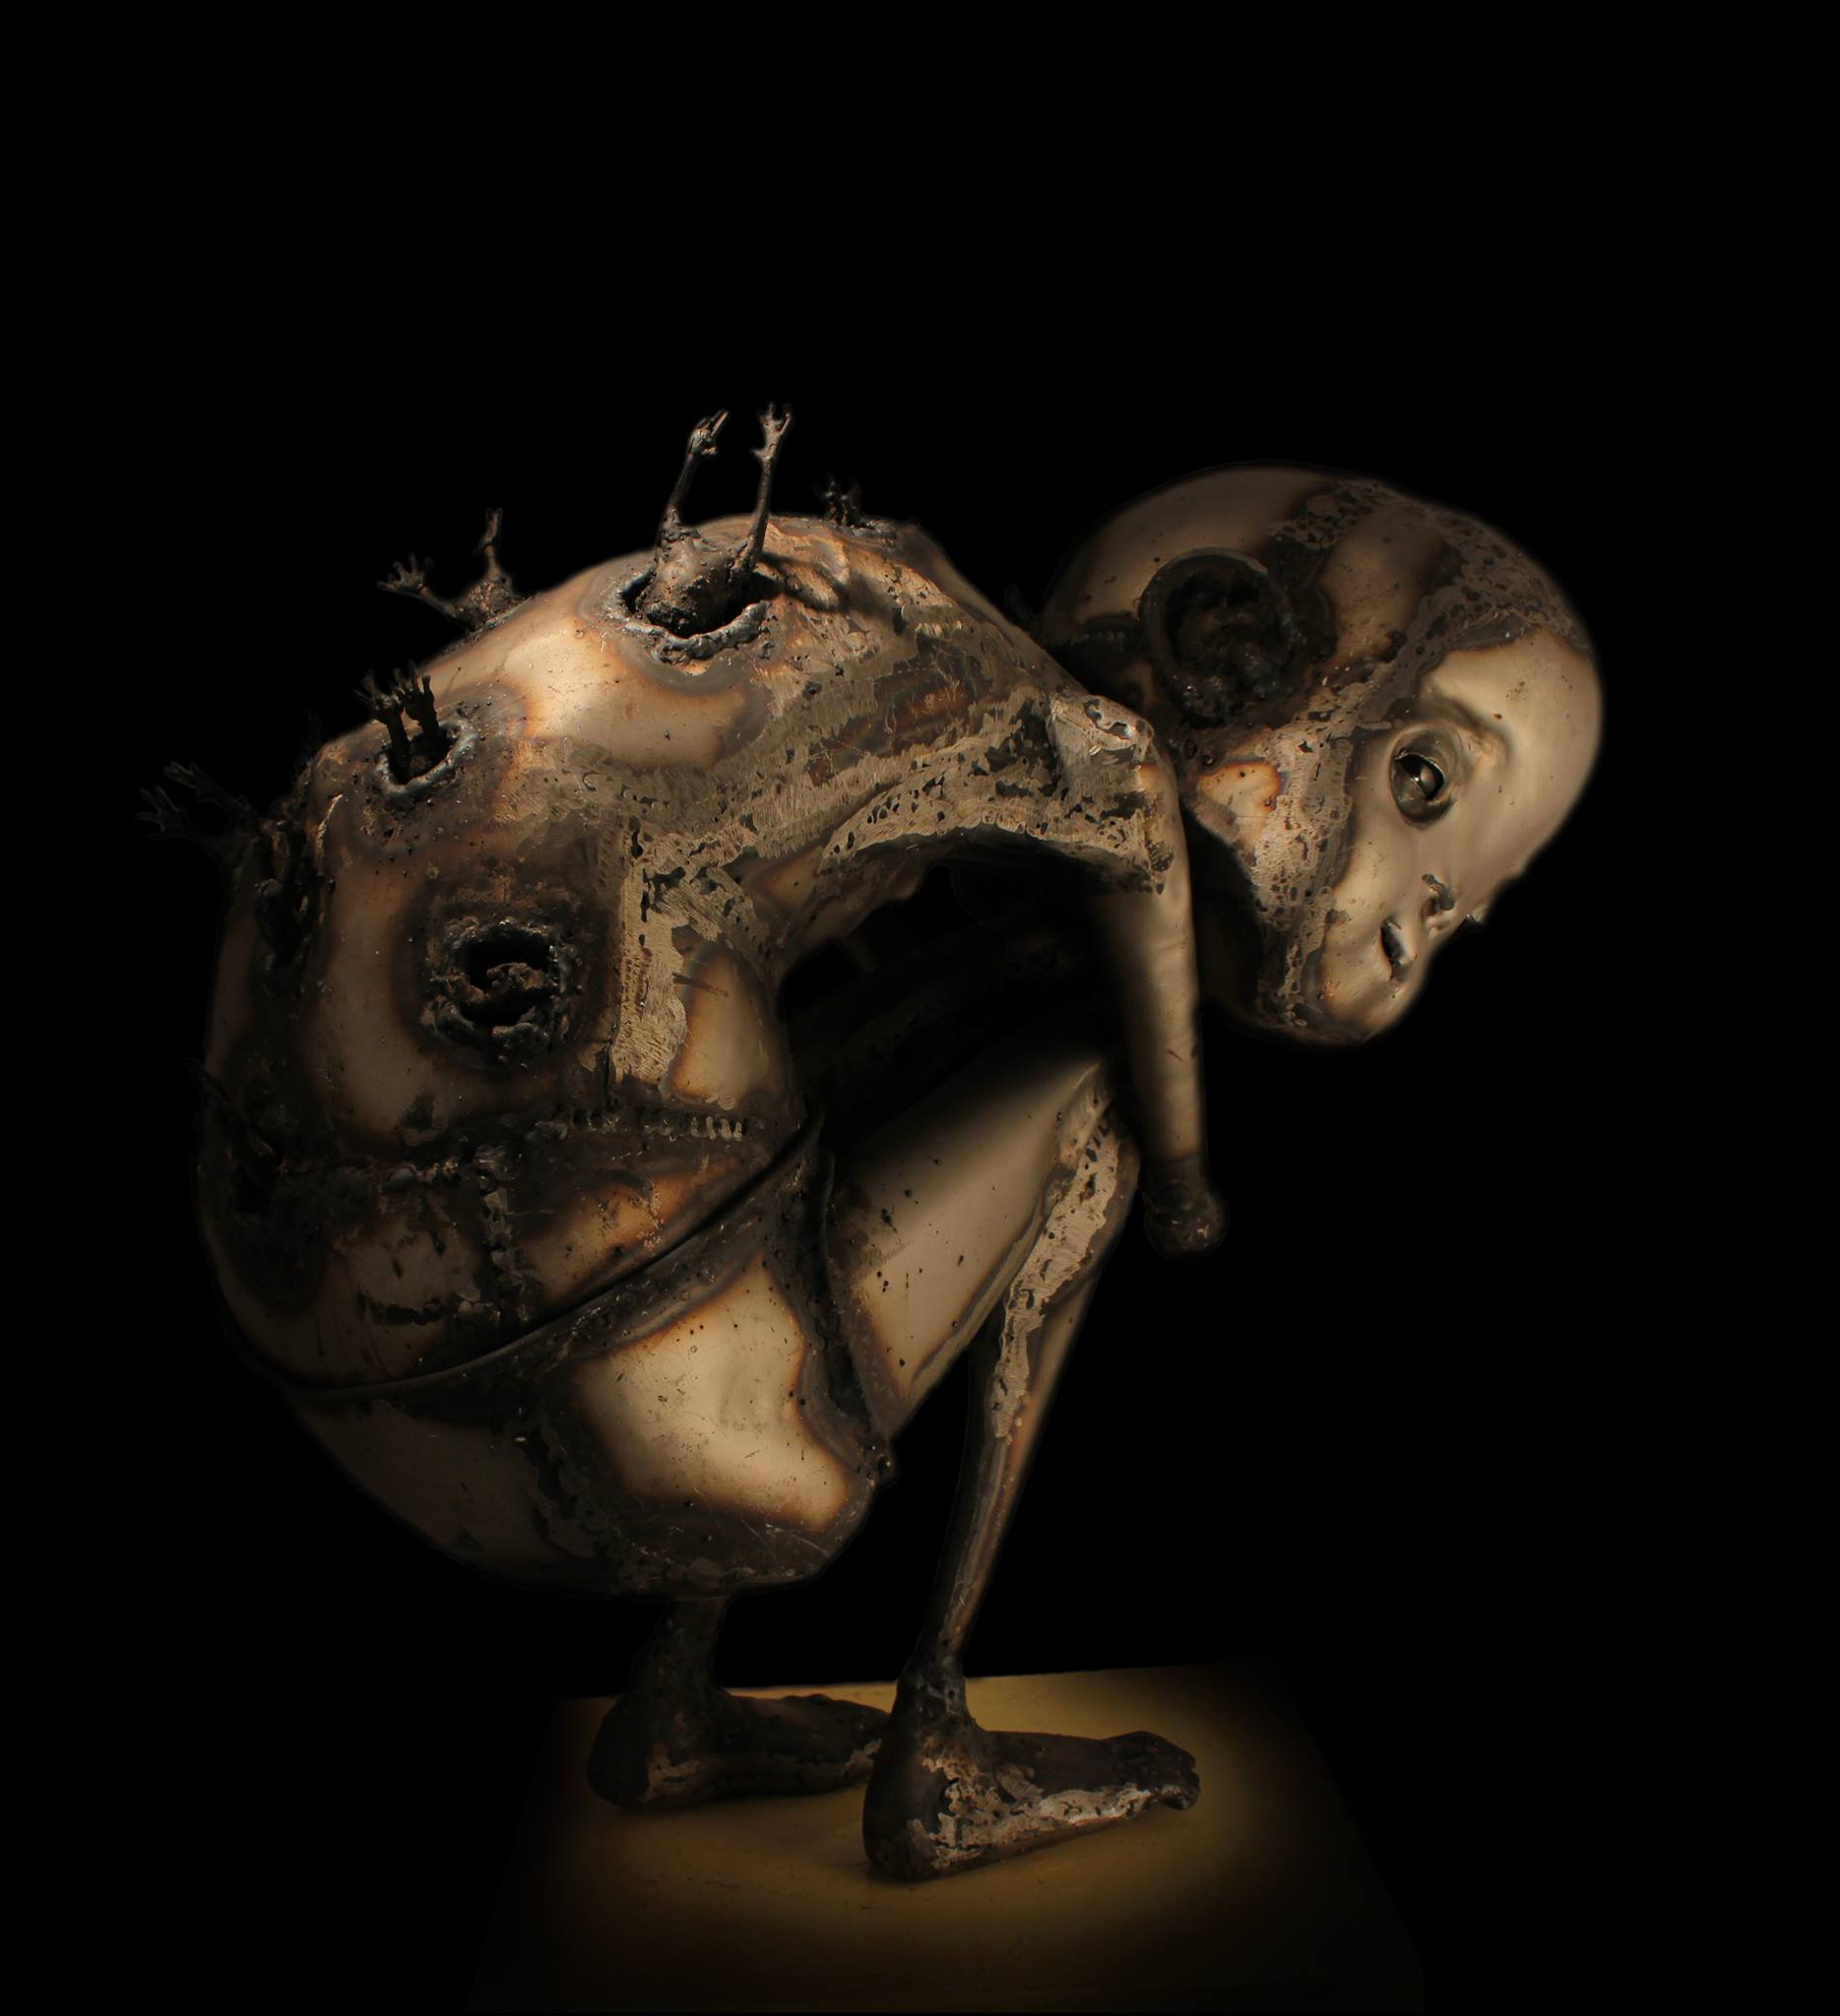 Guillermo Rigattieri – Steampunk sculptures Argentine